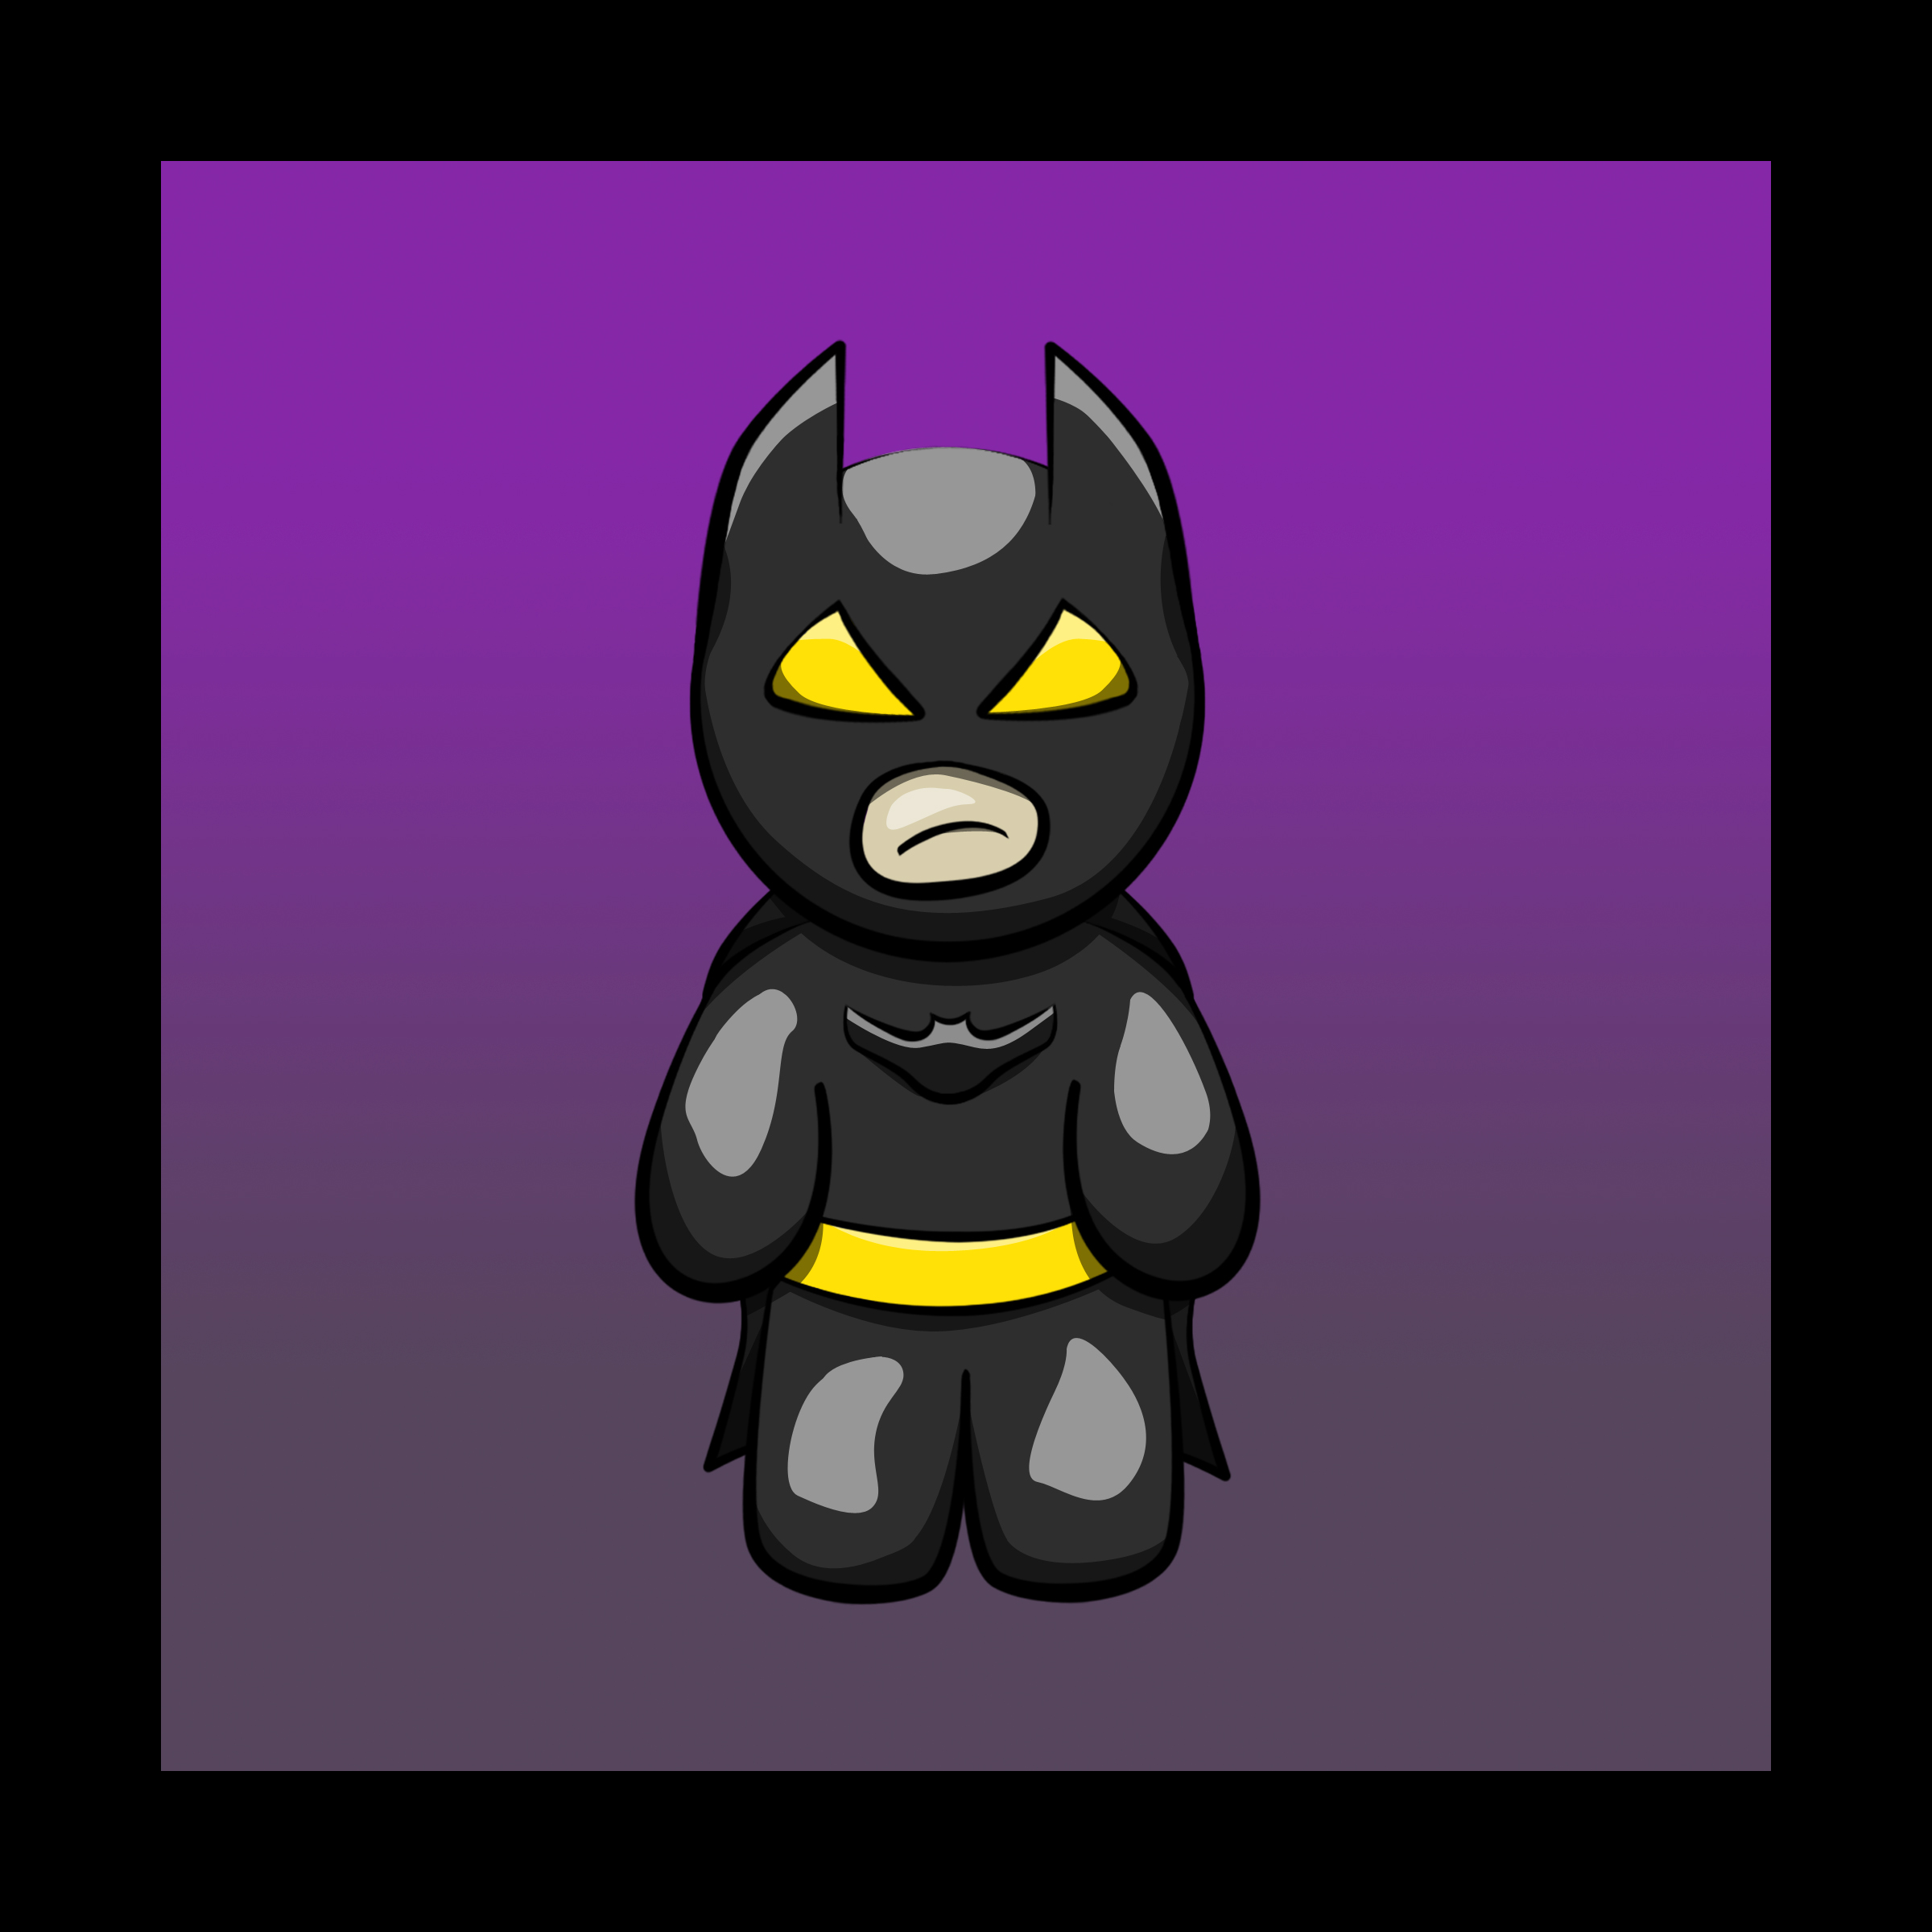 toocutebatman.jpg